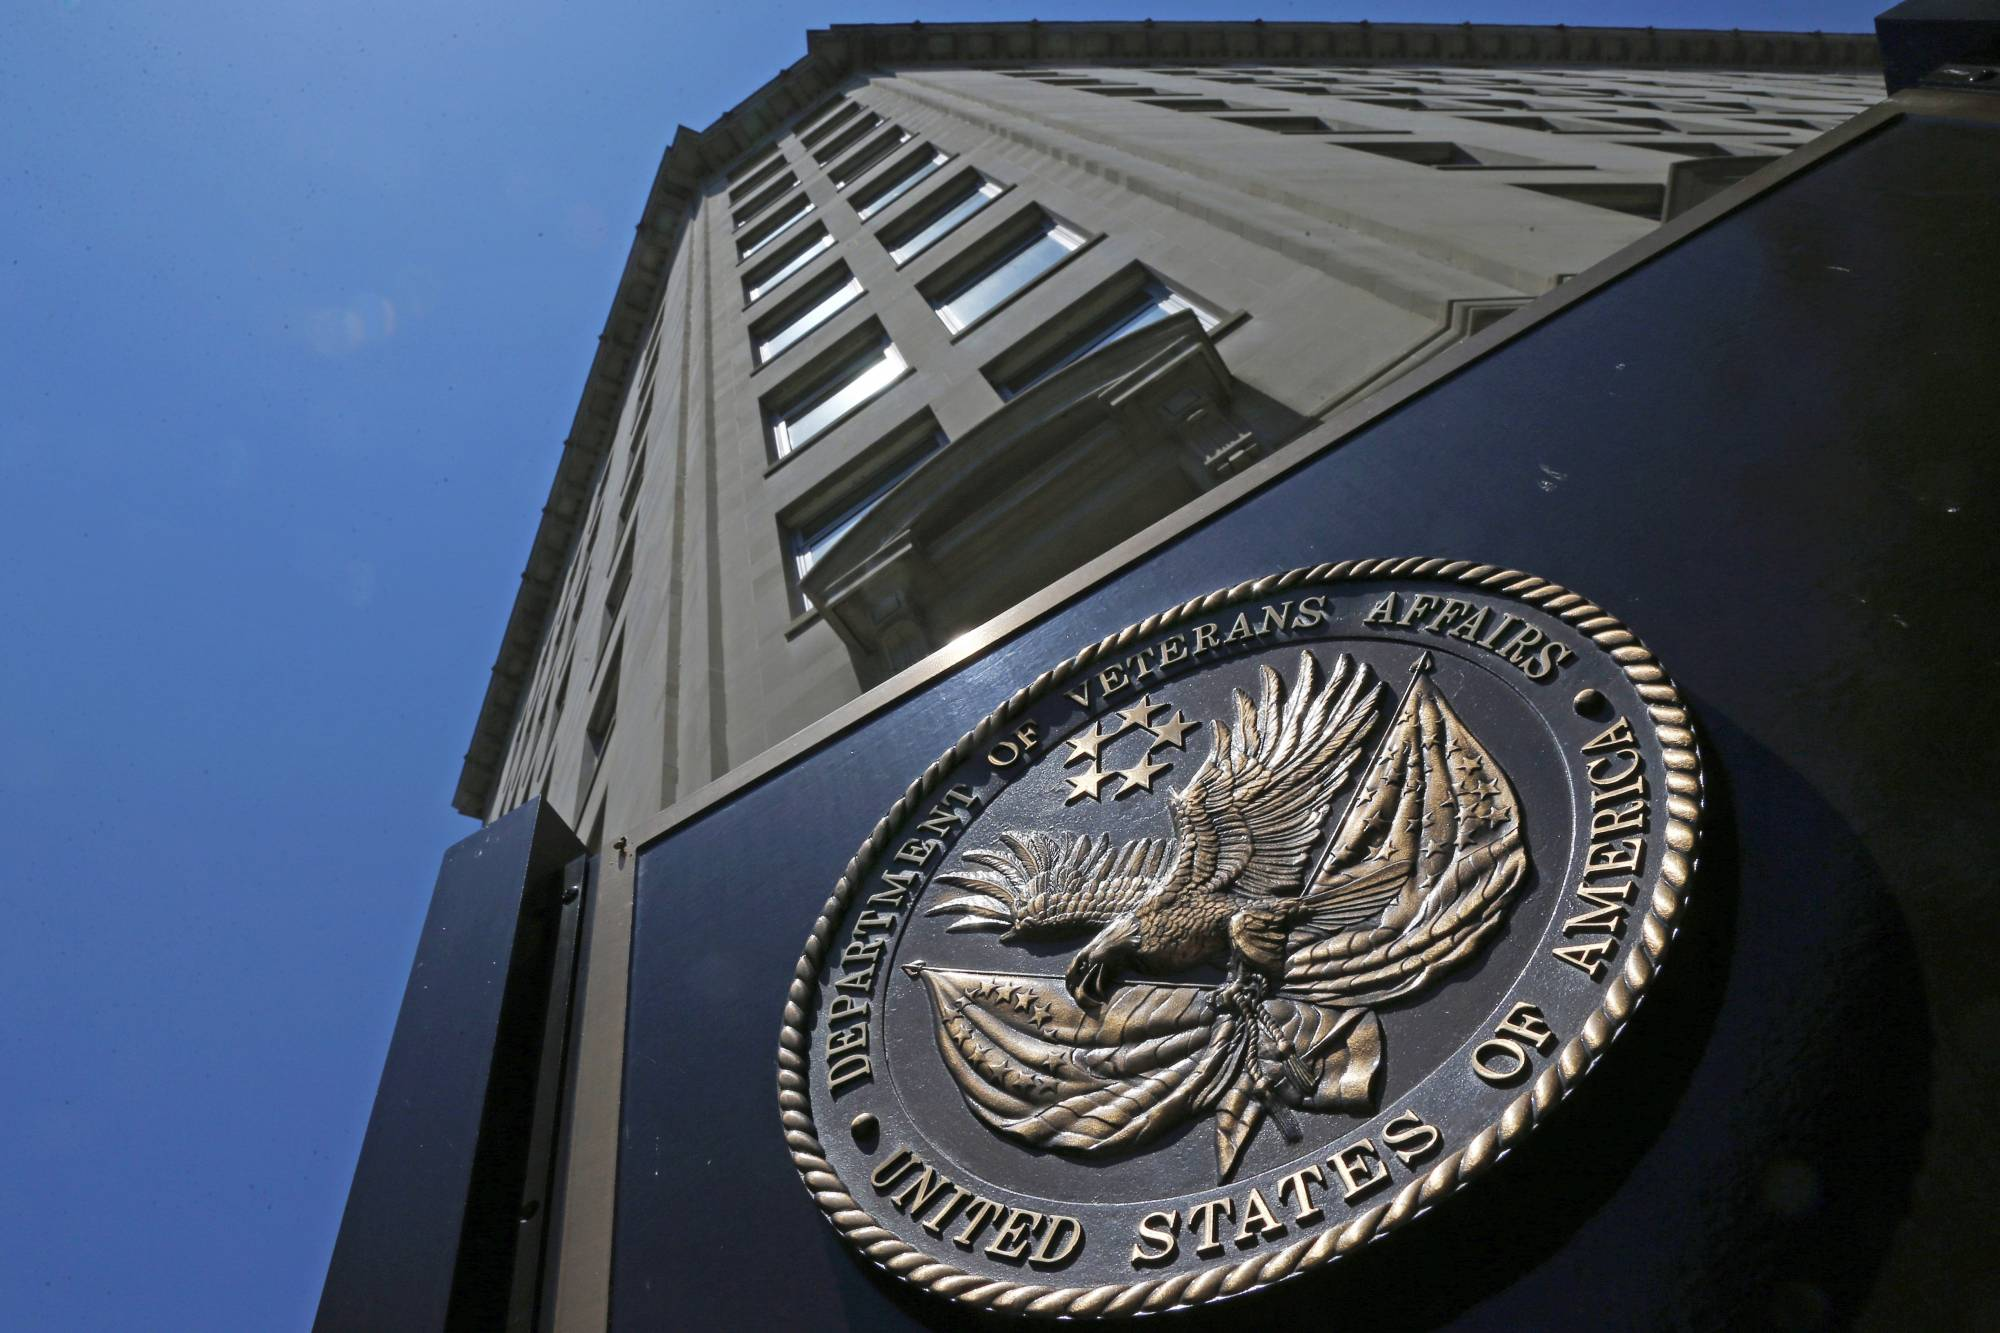 FILE - In this June 21, 2013, file photo, the seal affixed to the front of the Department of Veterans Affairs building in Washington. The advocacy group  National Industries for the Blind filed a lawsuit Wednesday, May 24, 2017,  in U.S. District Court in Washington alleging the agency ignored a longstanding law when it changed contracting rules used for decades to give jobs to the blind. (AP Photo/Charles Dharapak, File)